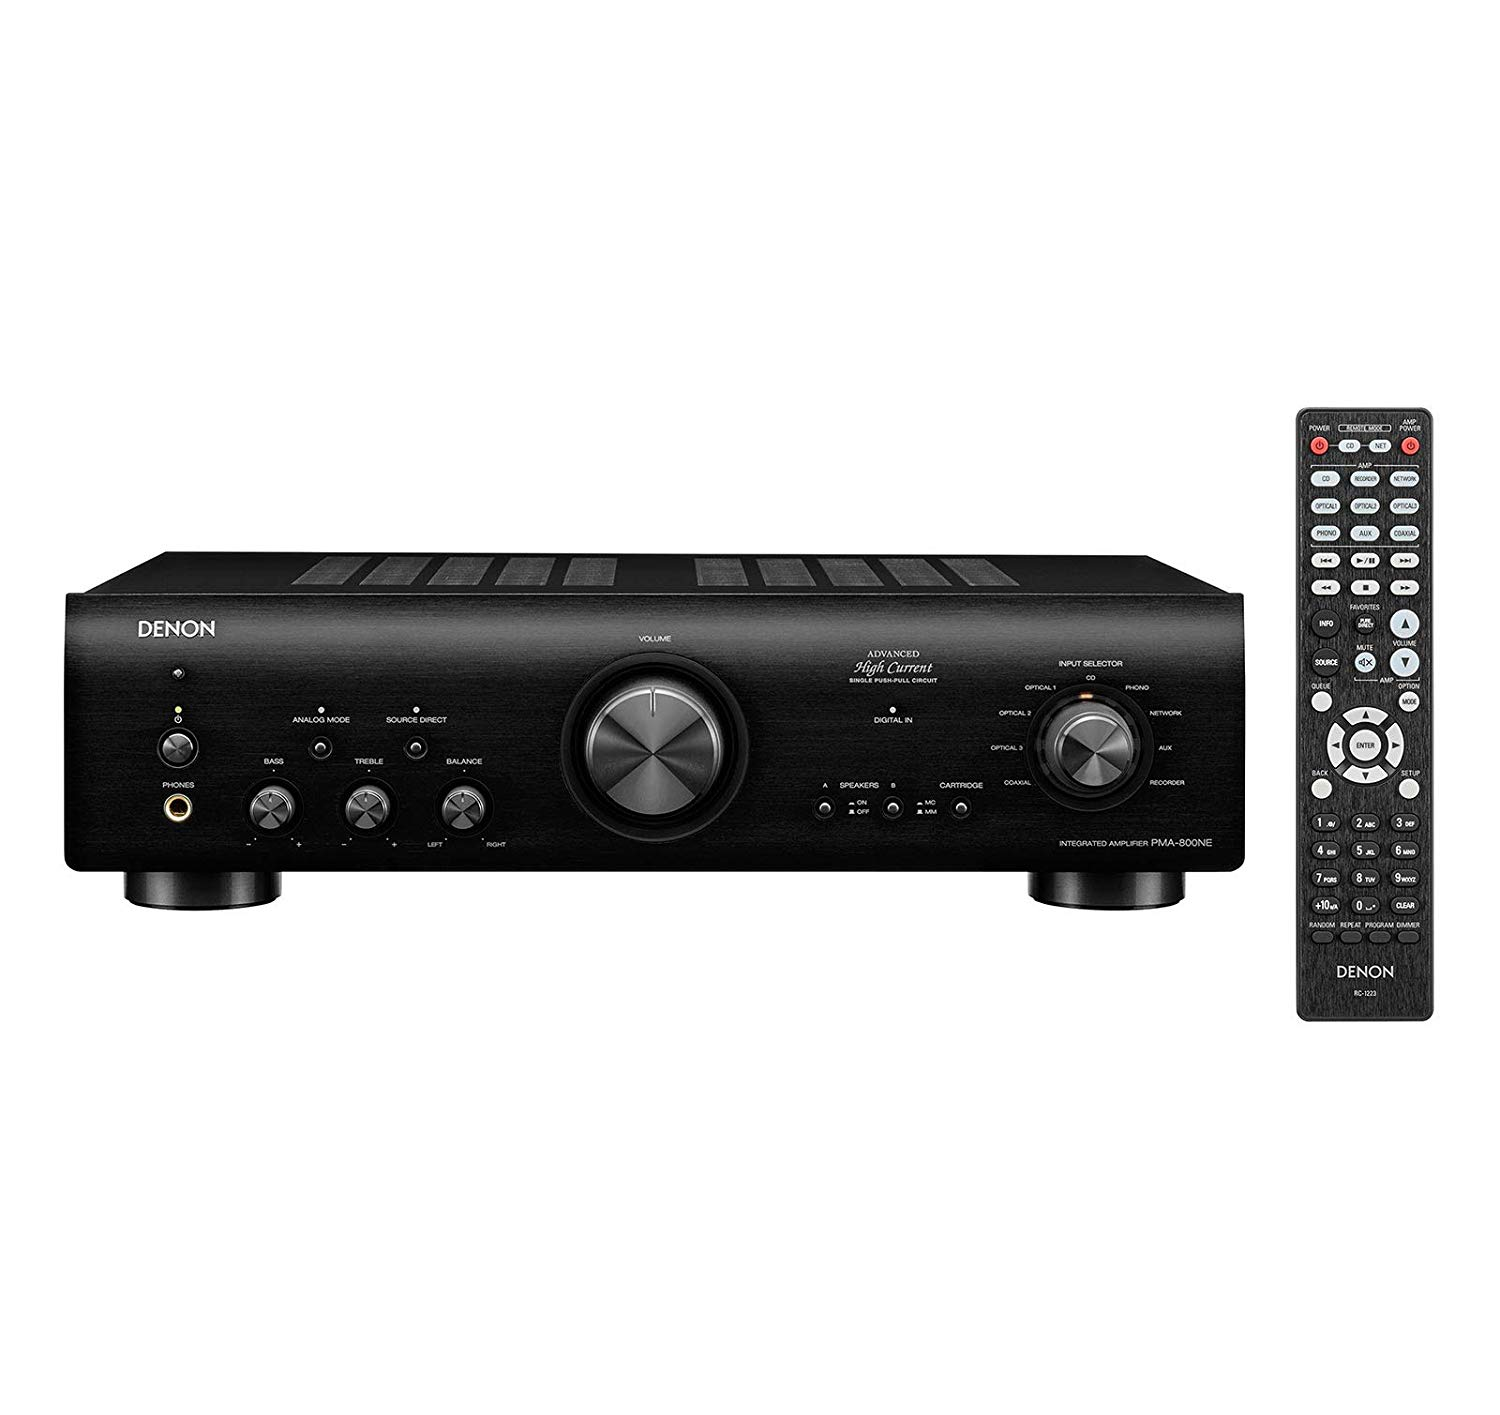 Cheap Denon Integrated Amplifier Find Listen Better T Use Ic Lm1875 Currentmode Circuit Get Quotations Analog Mode Audio Component Black Pma 800ne